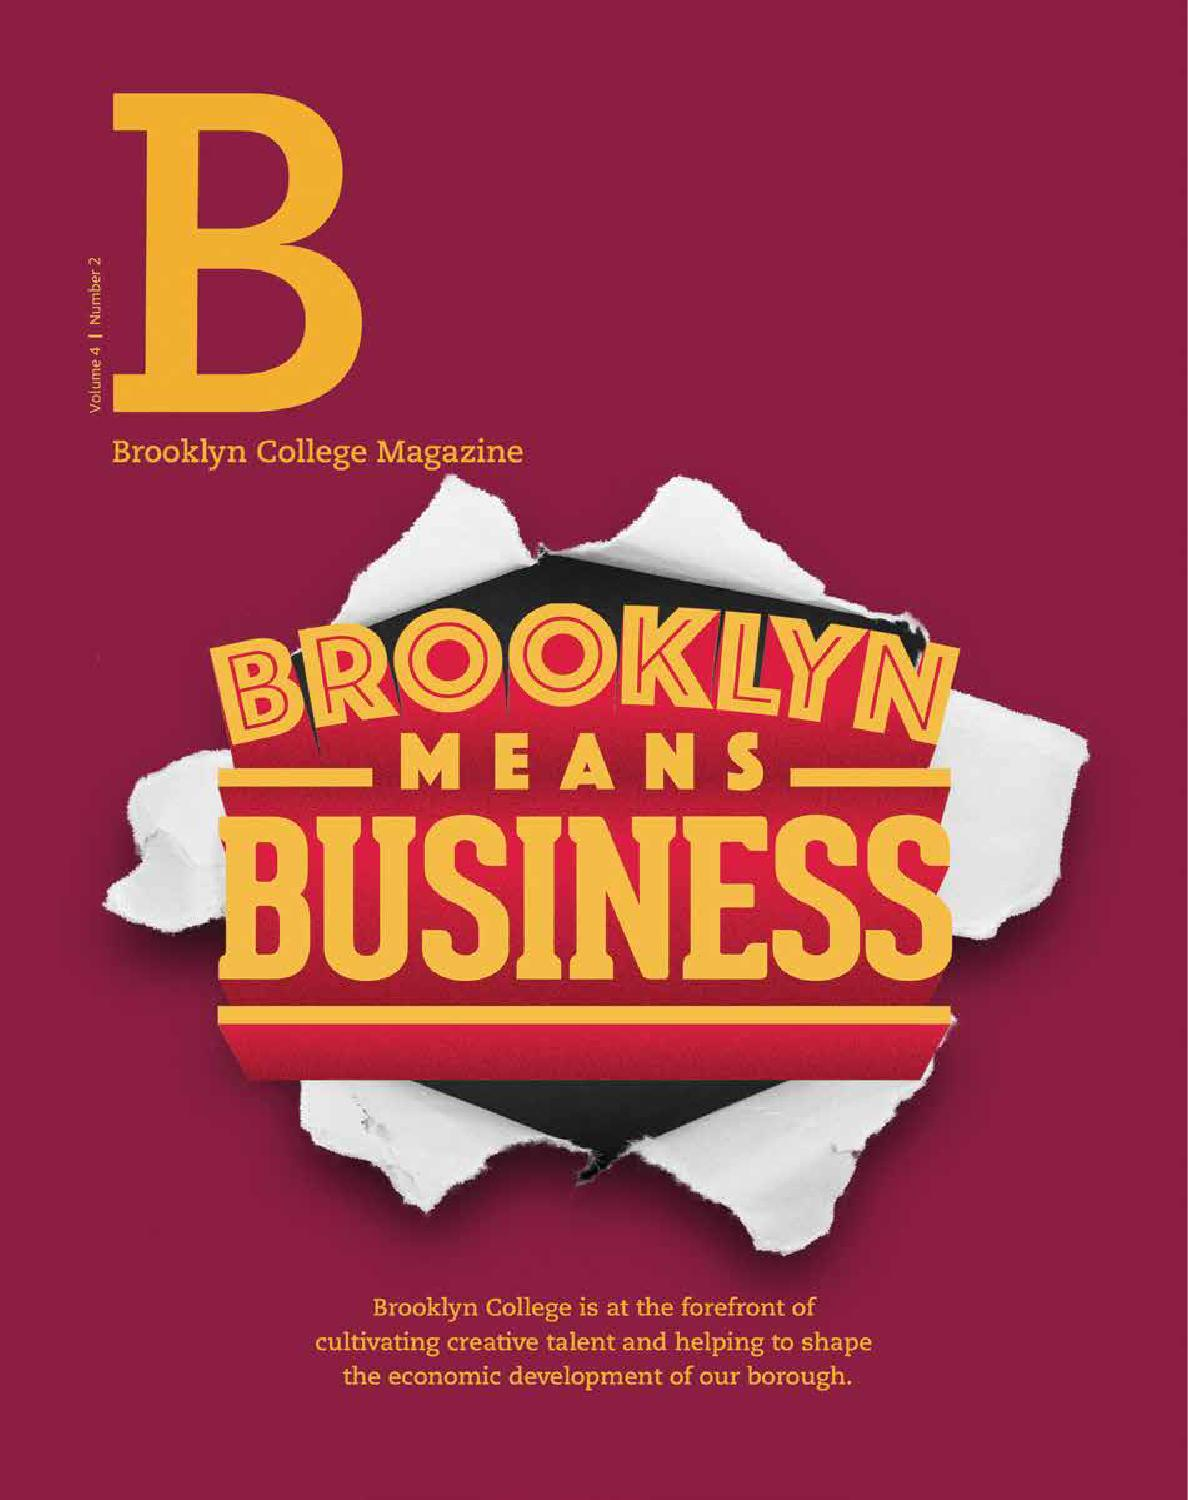 Brooklyn College Magazine Volume 4 Number 2 By Brooklyn College